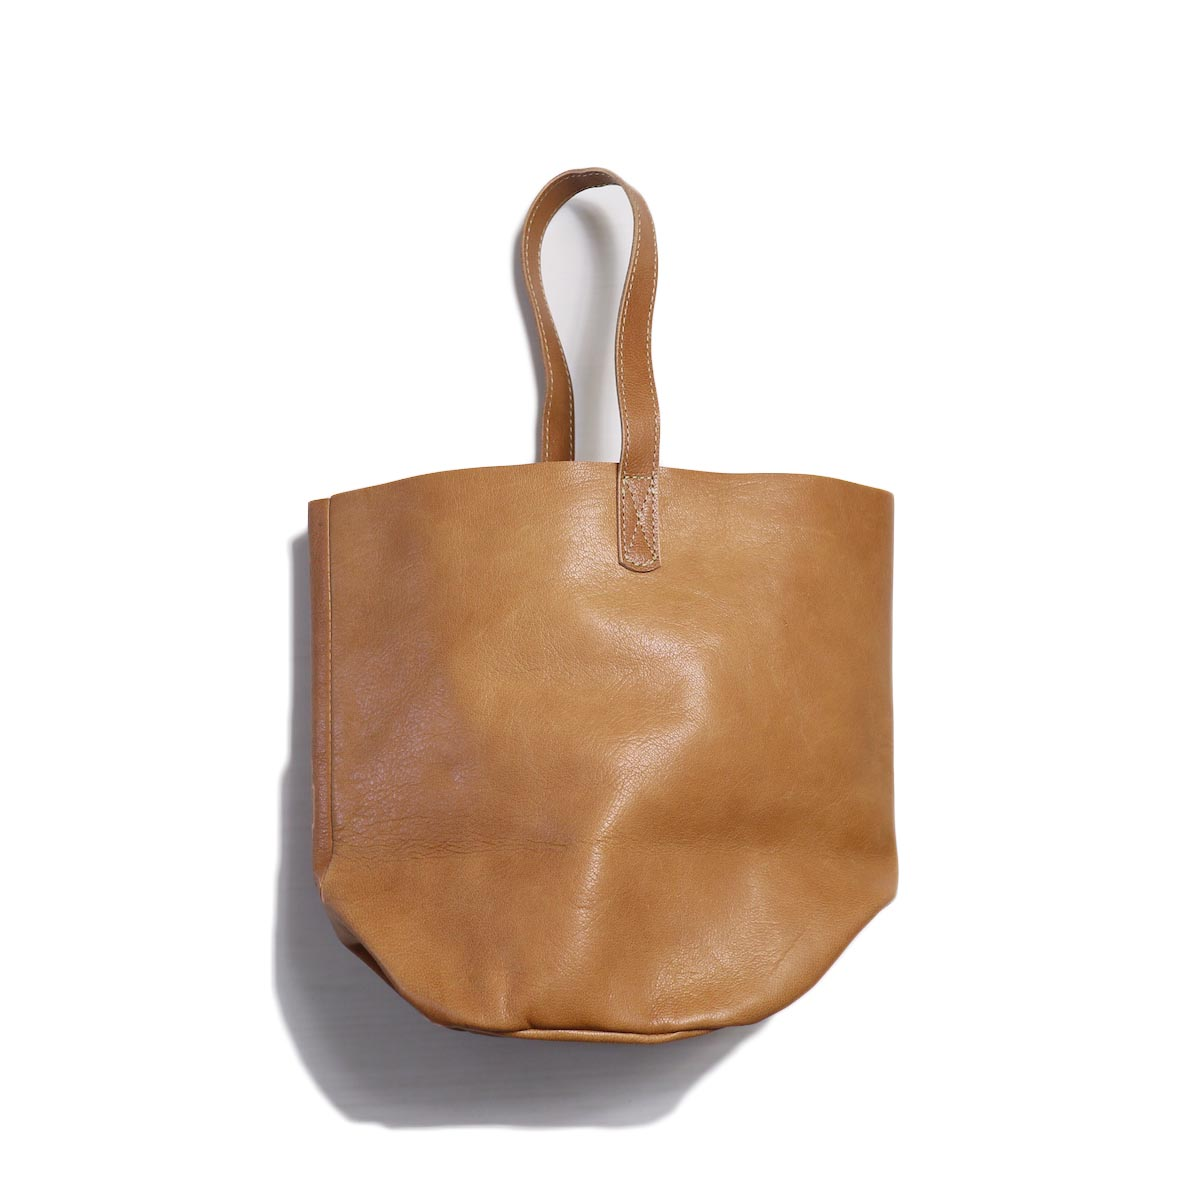 MASTER & Co. / GOAT ONE HANDLE BAG -BROWN